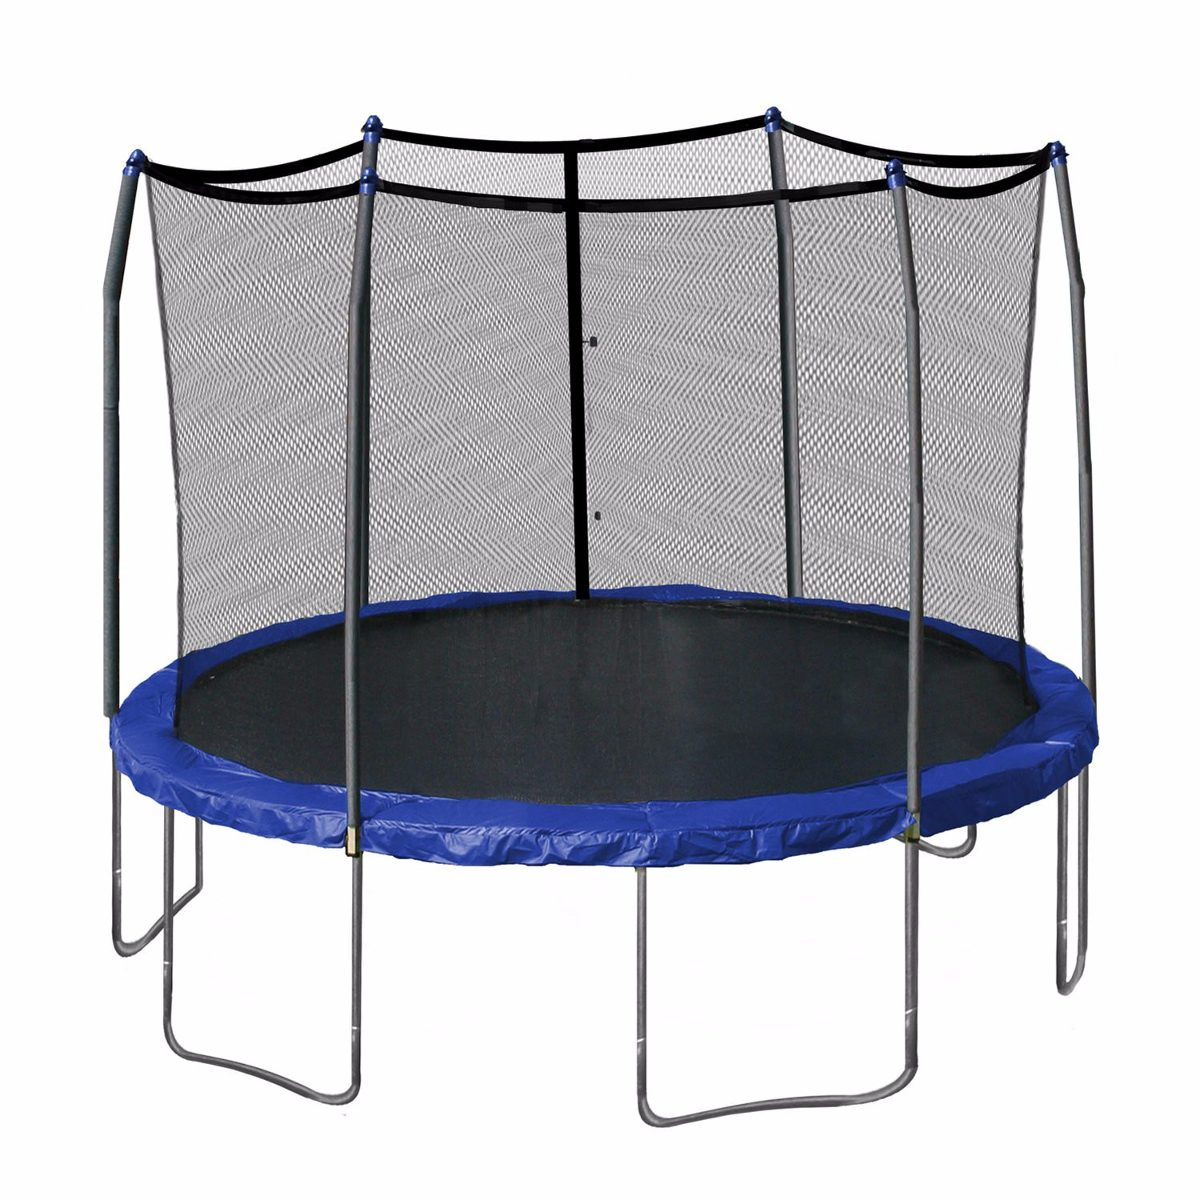 trampolin tombling brincolin con red de mt envio grati 3 en mercado libre. Black Bedroom Furniture Sets. Home Design Ideas